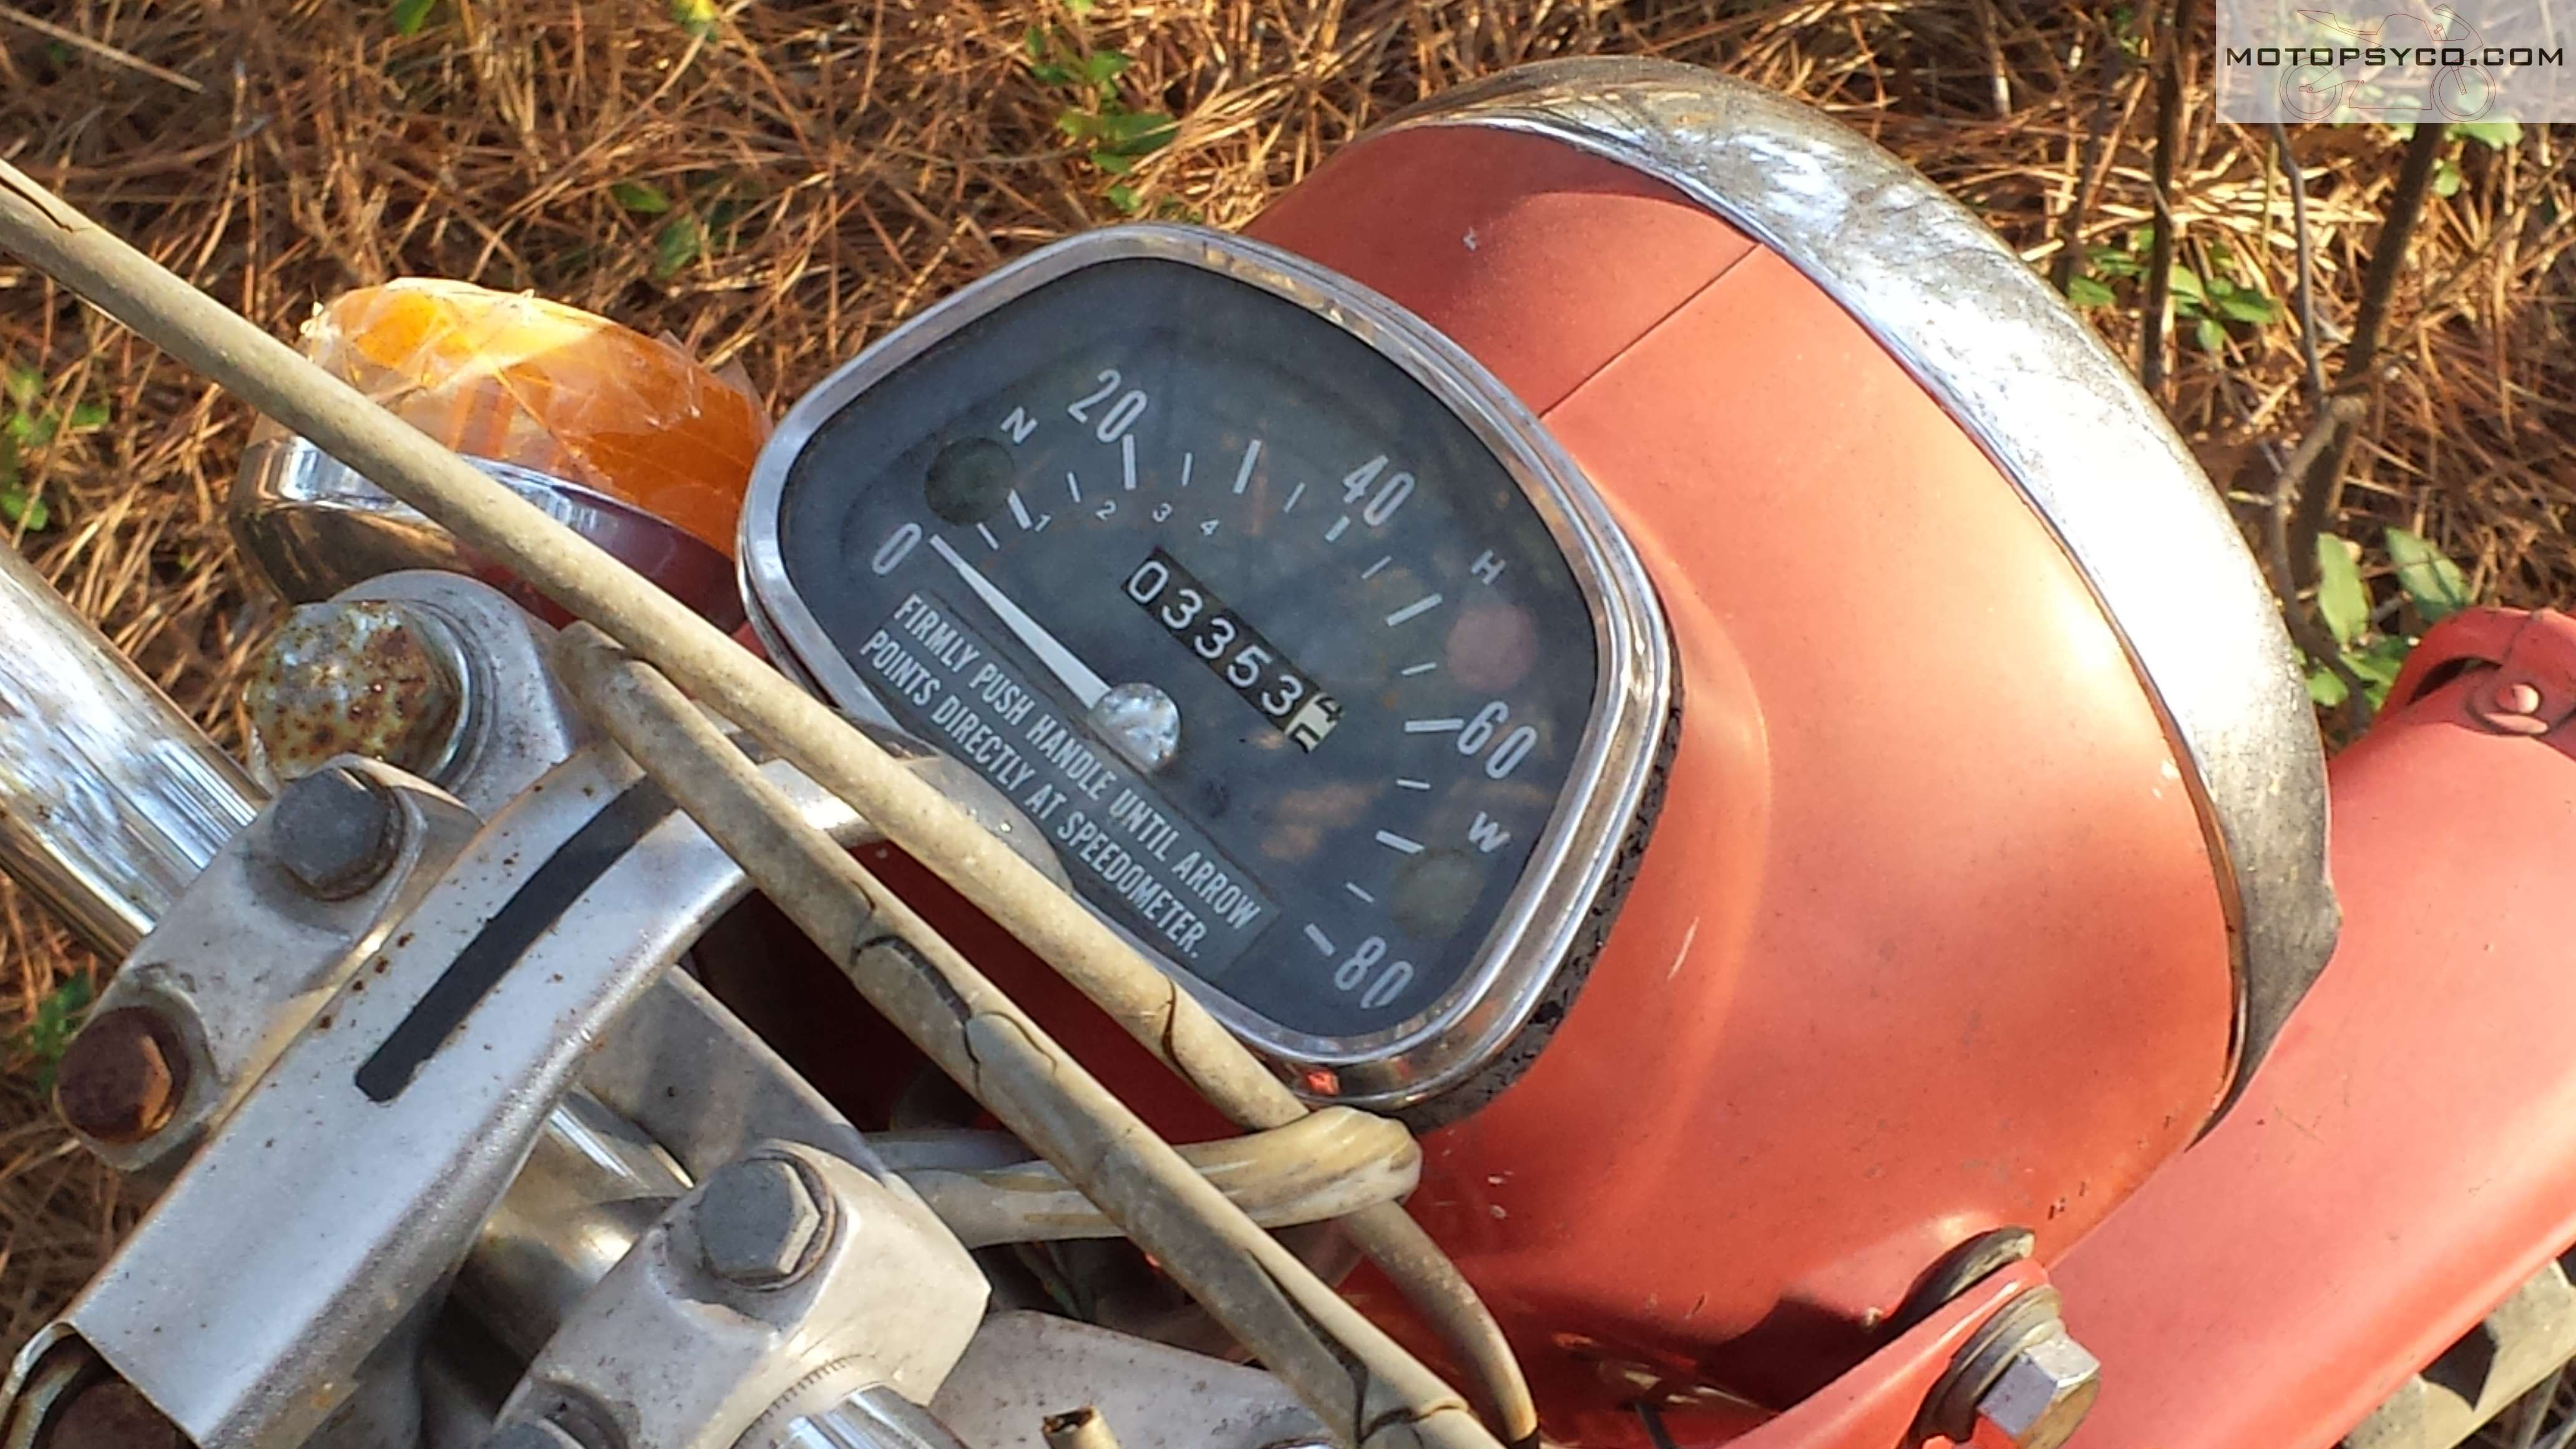 1970 Honda Ct90 Junkyard Dog Motopsycos Asylum Crazy About Ct70 Fuel Tank Speedometer